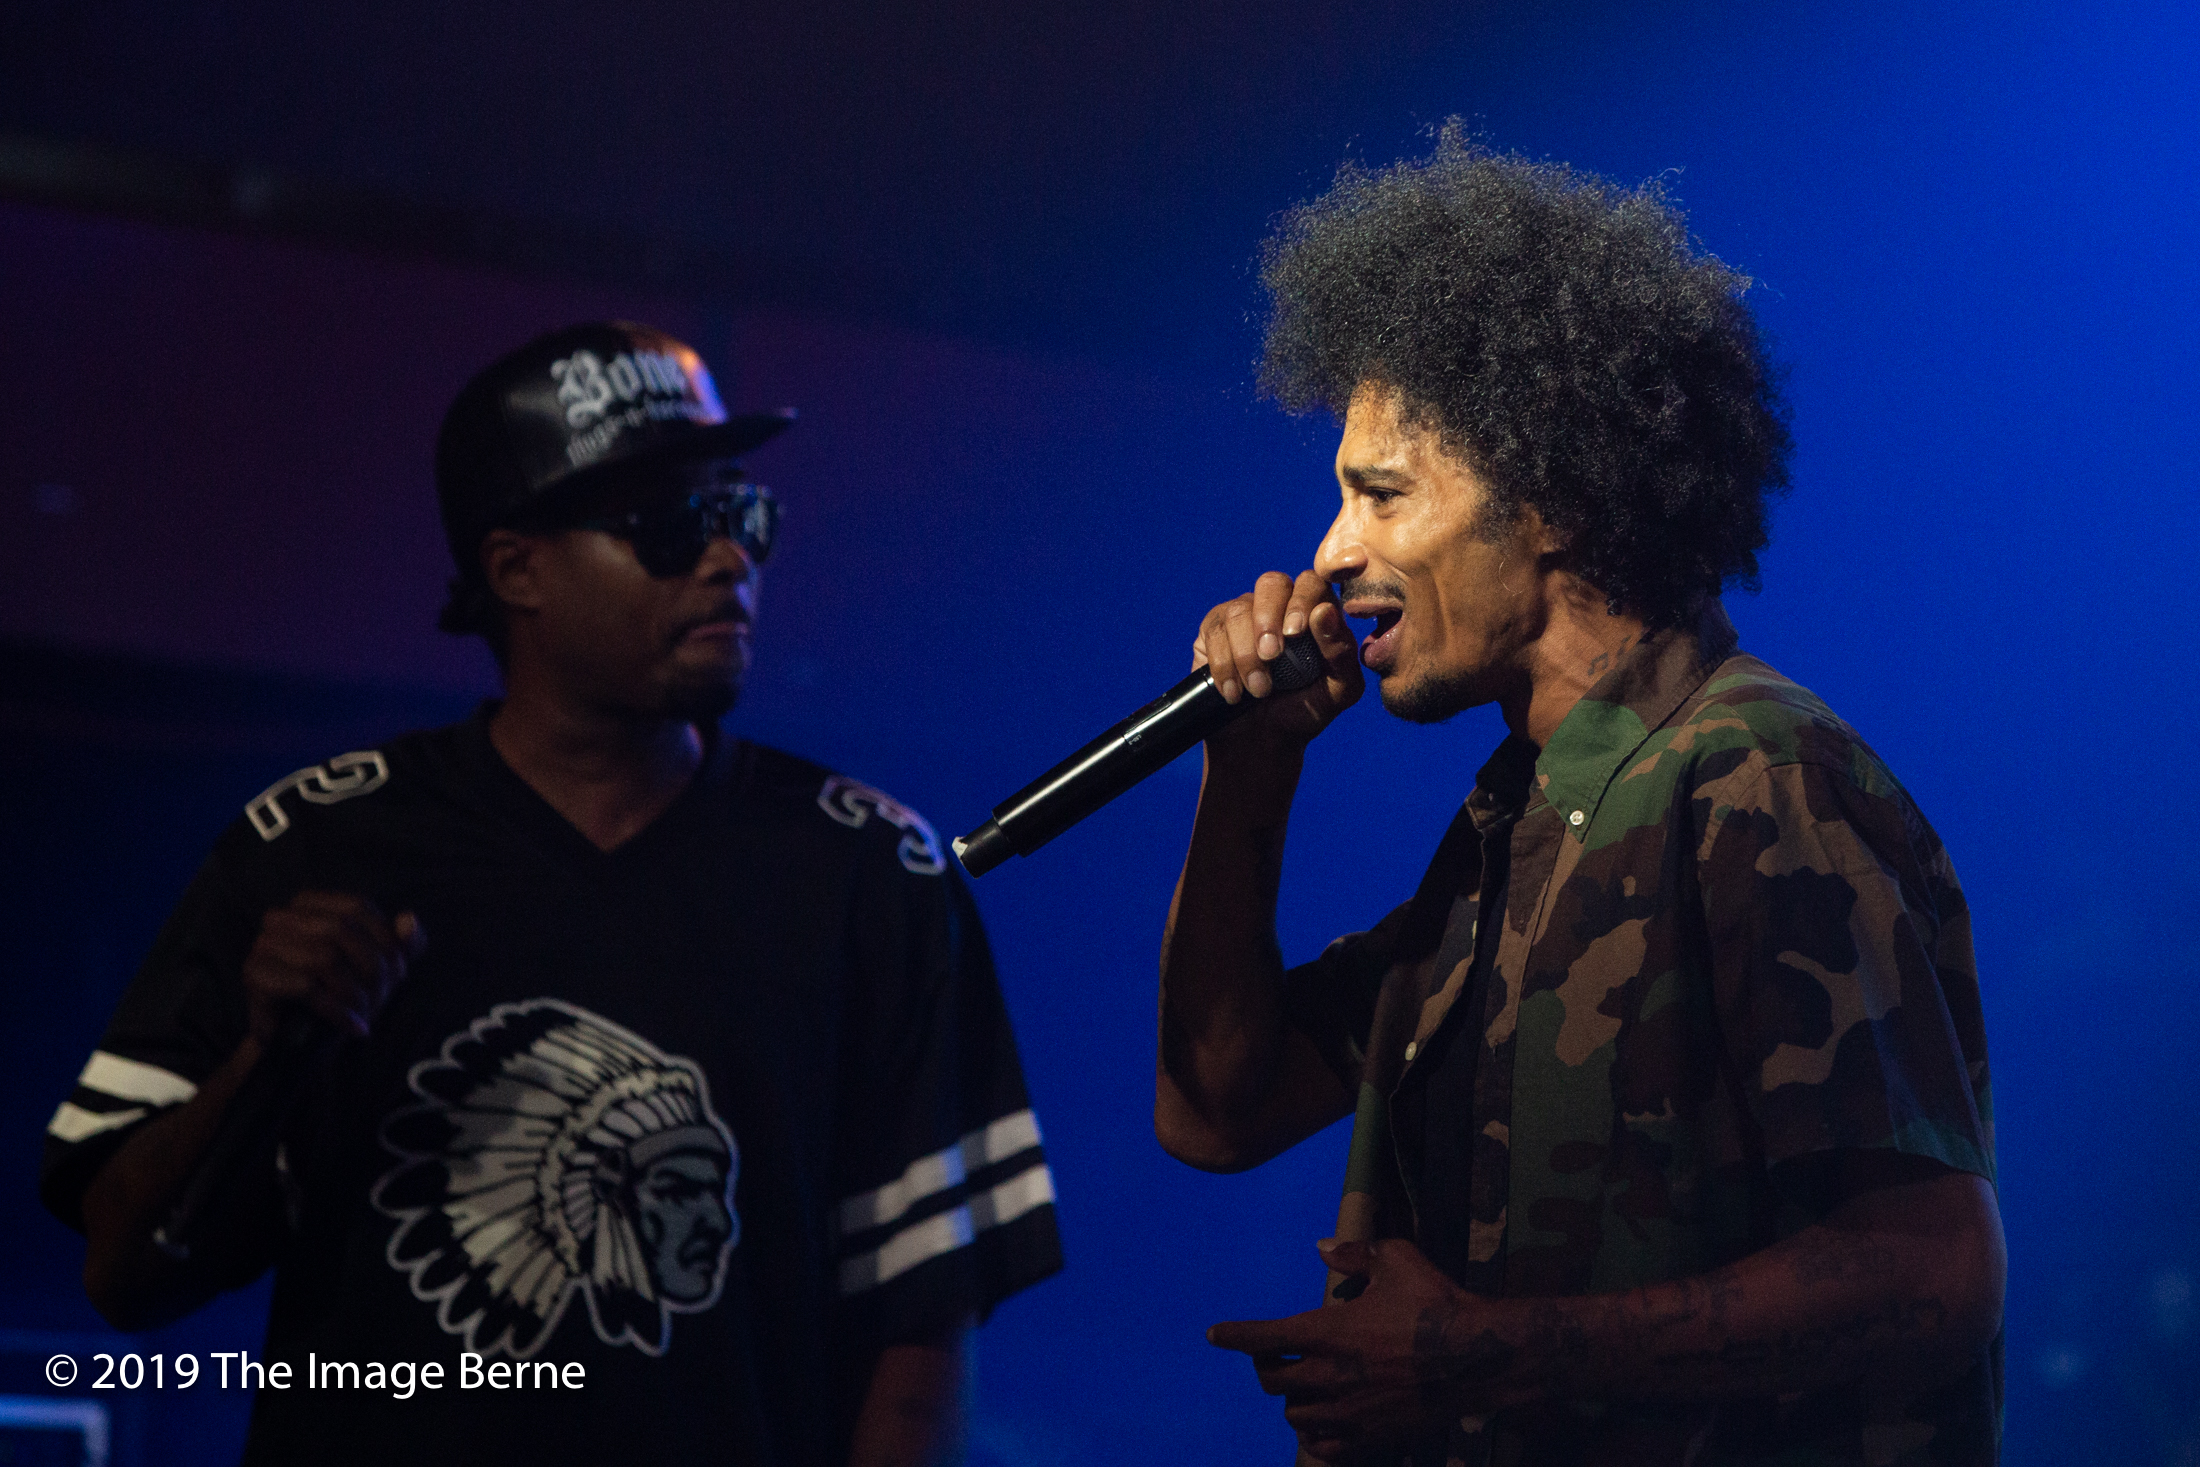 Krayzie Bone, Wish Bone, Flesh-N-Bone, Layzie Bone, and Bizzy Bone-110.jpg